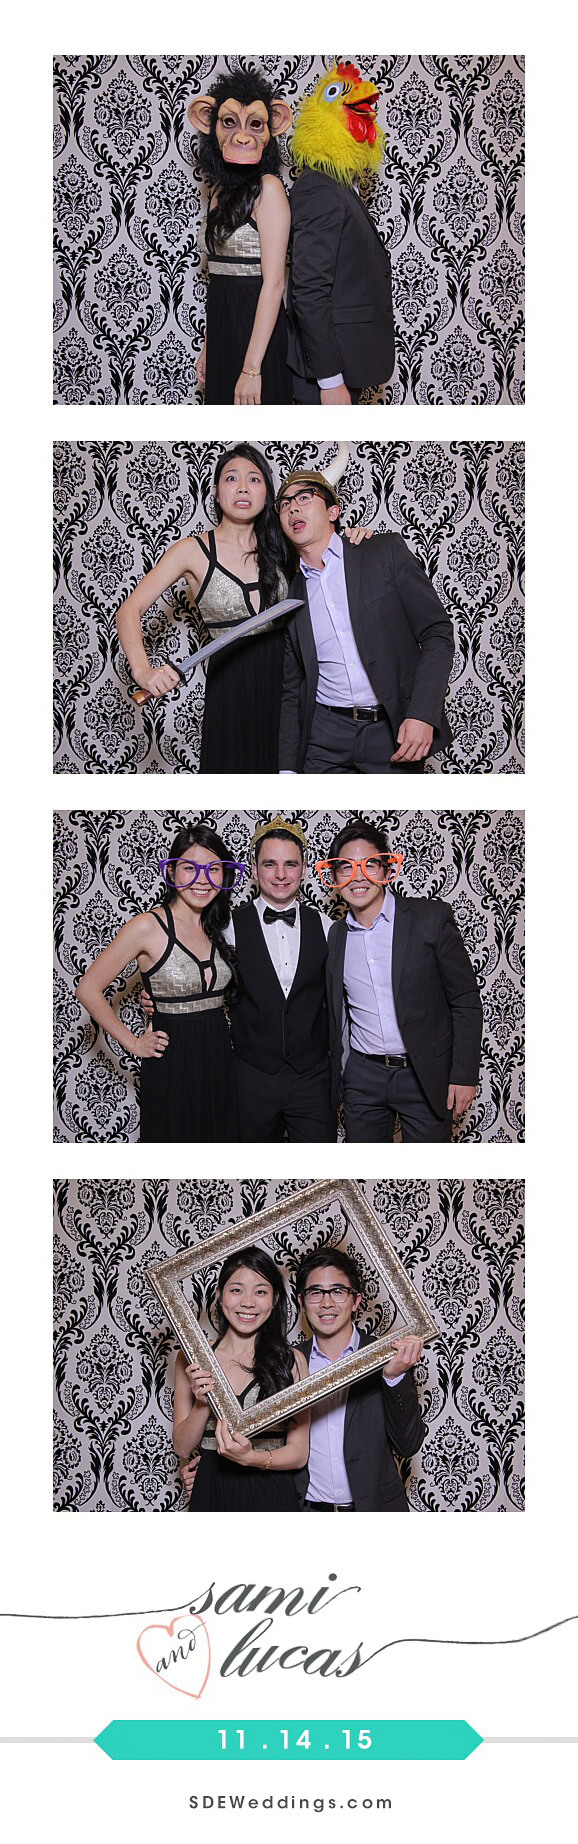 Toronto Paradise Banquet Hall Wedding Photo Booth Rental 10